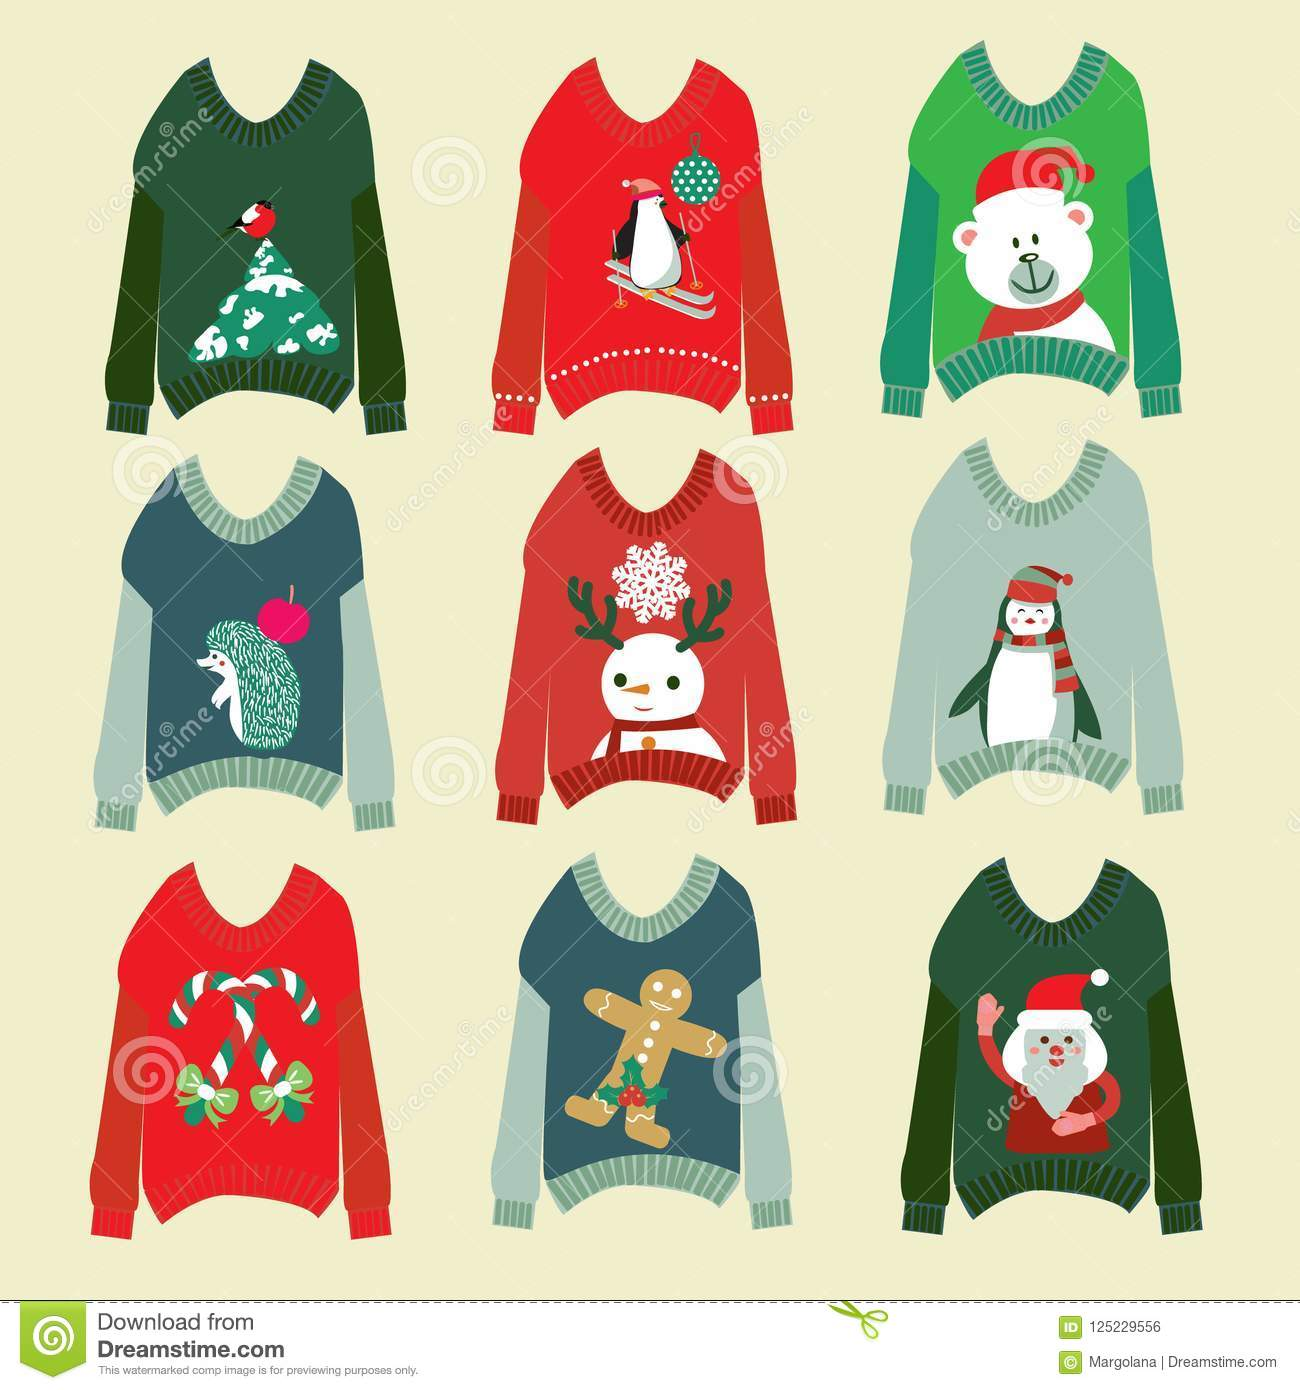 download ugly christmas sweaters set sweater party collection stock vector illustration of decoration greeting - Ugly Christmas Sweater Party Decorations